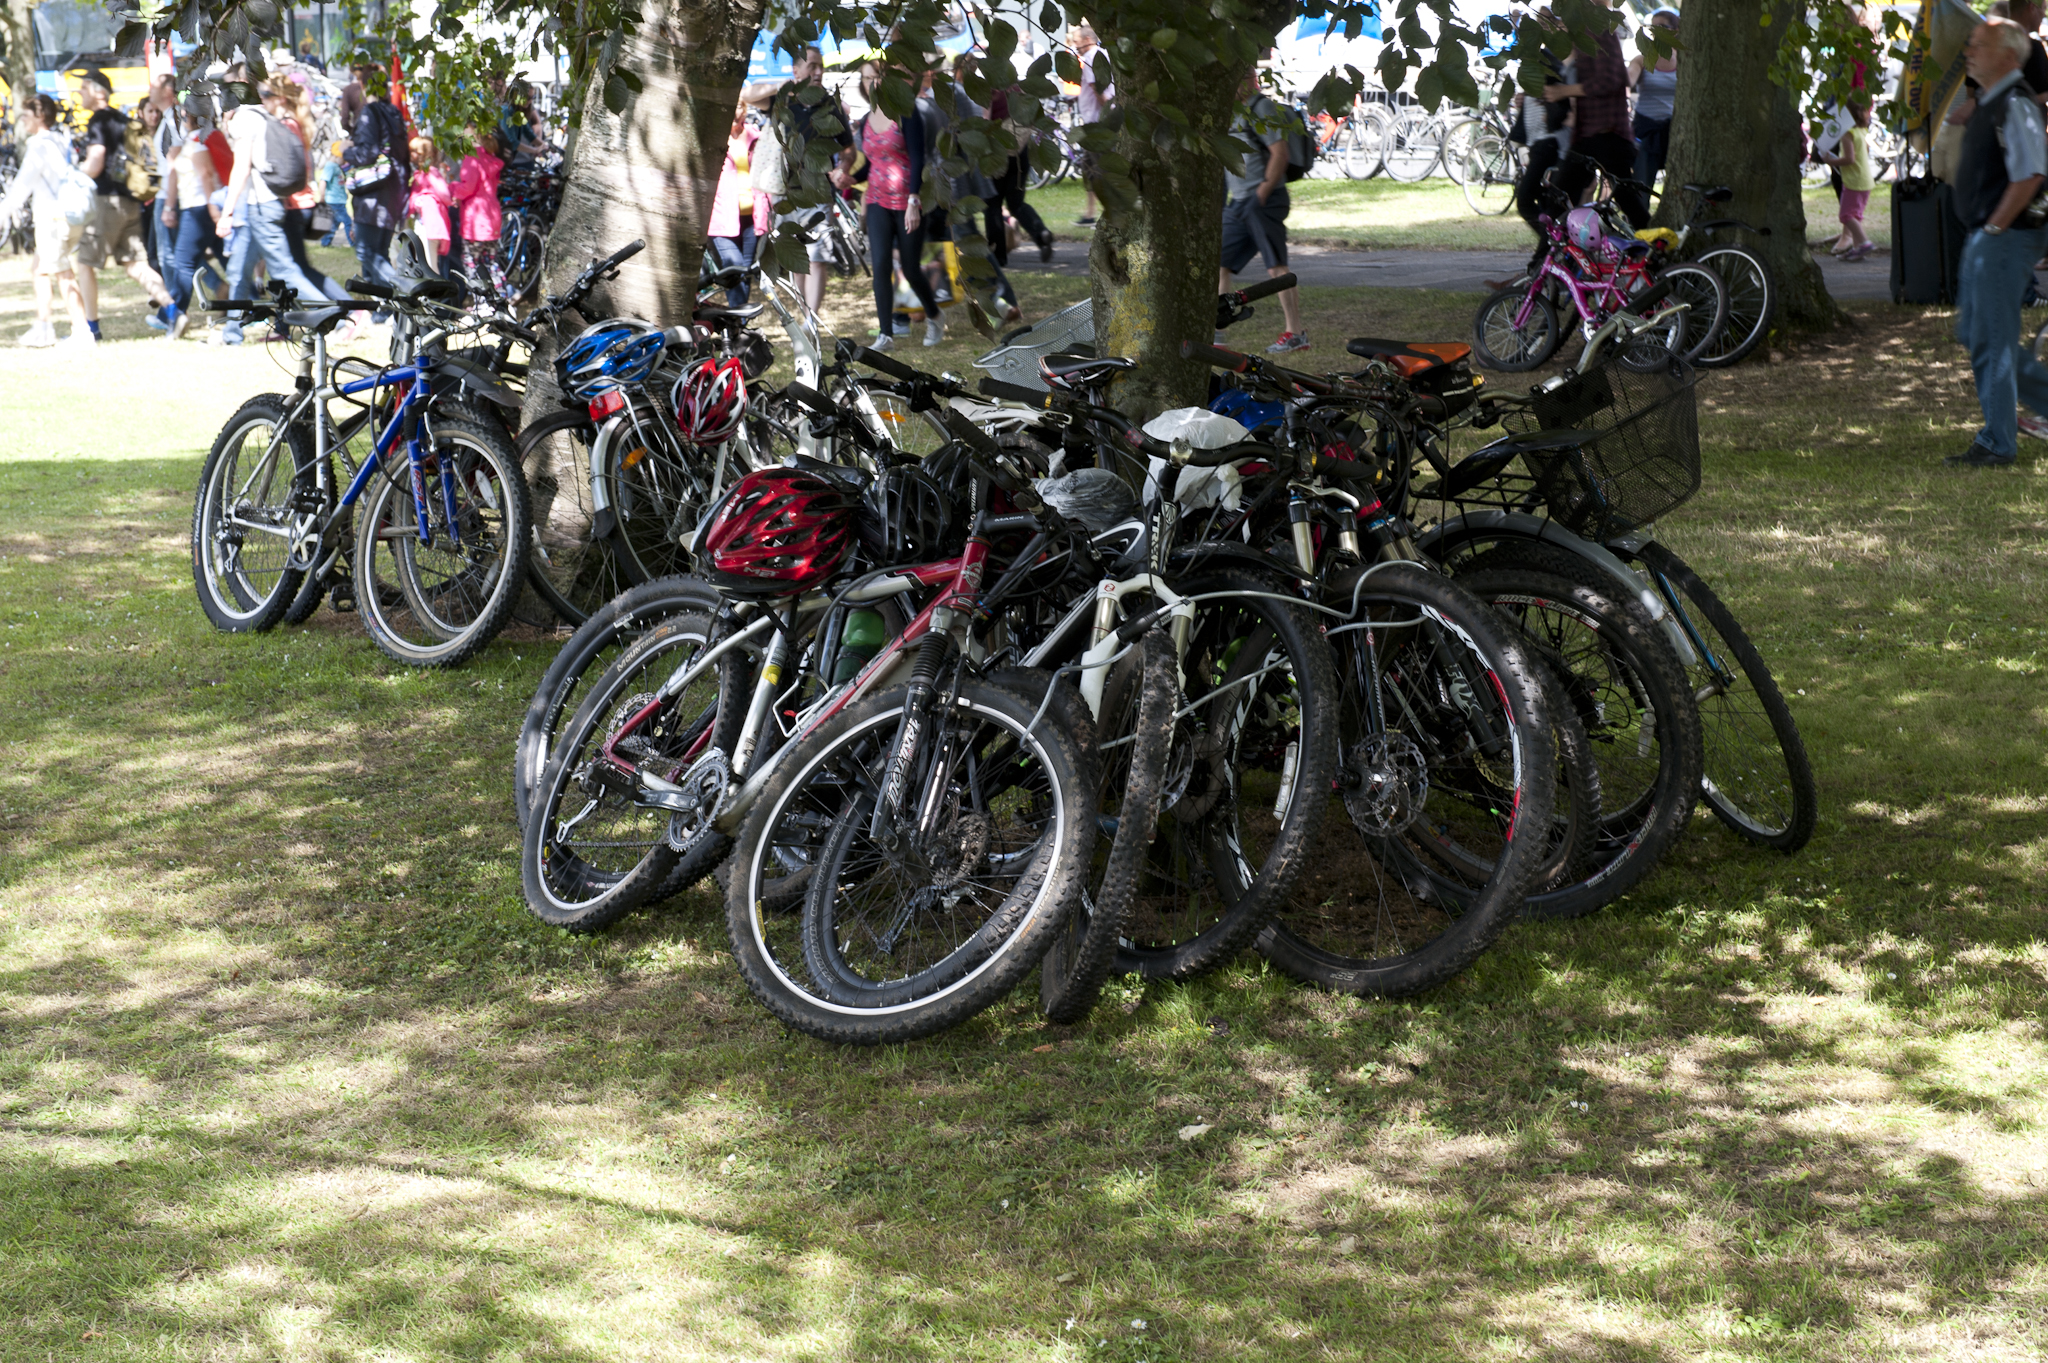 Most trees and static objects had bikes locked to them..